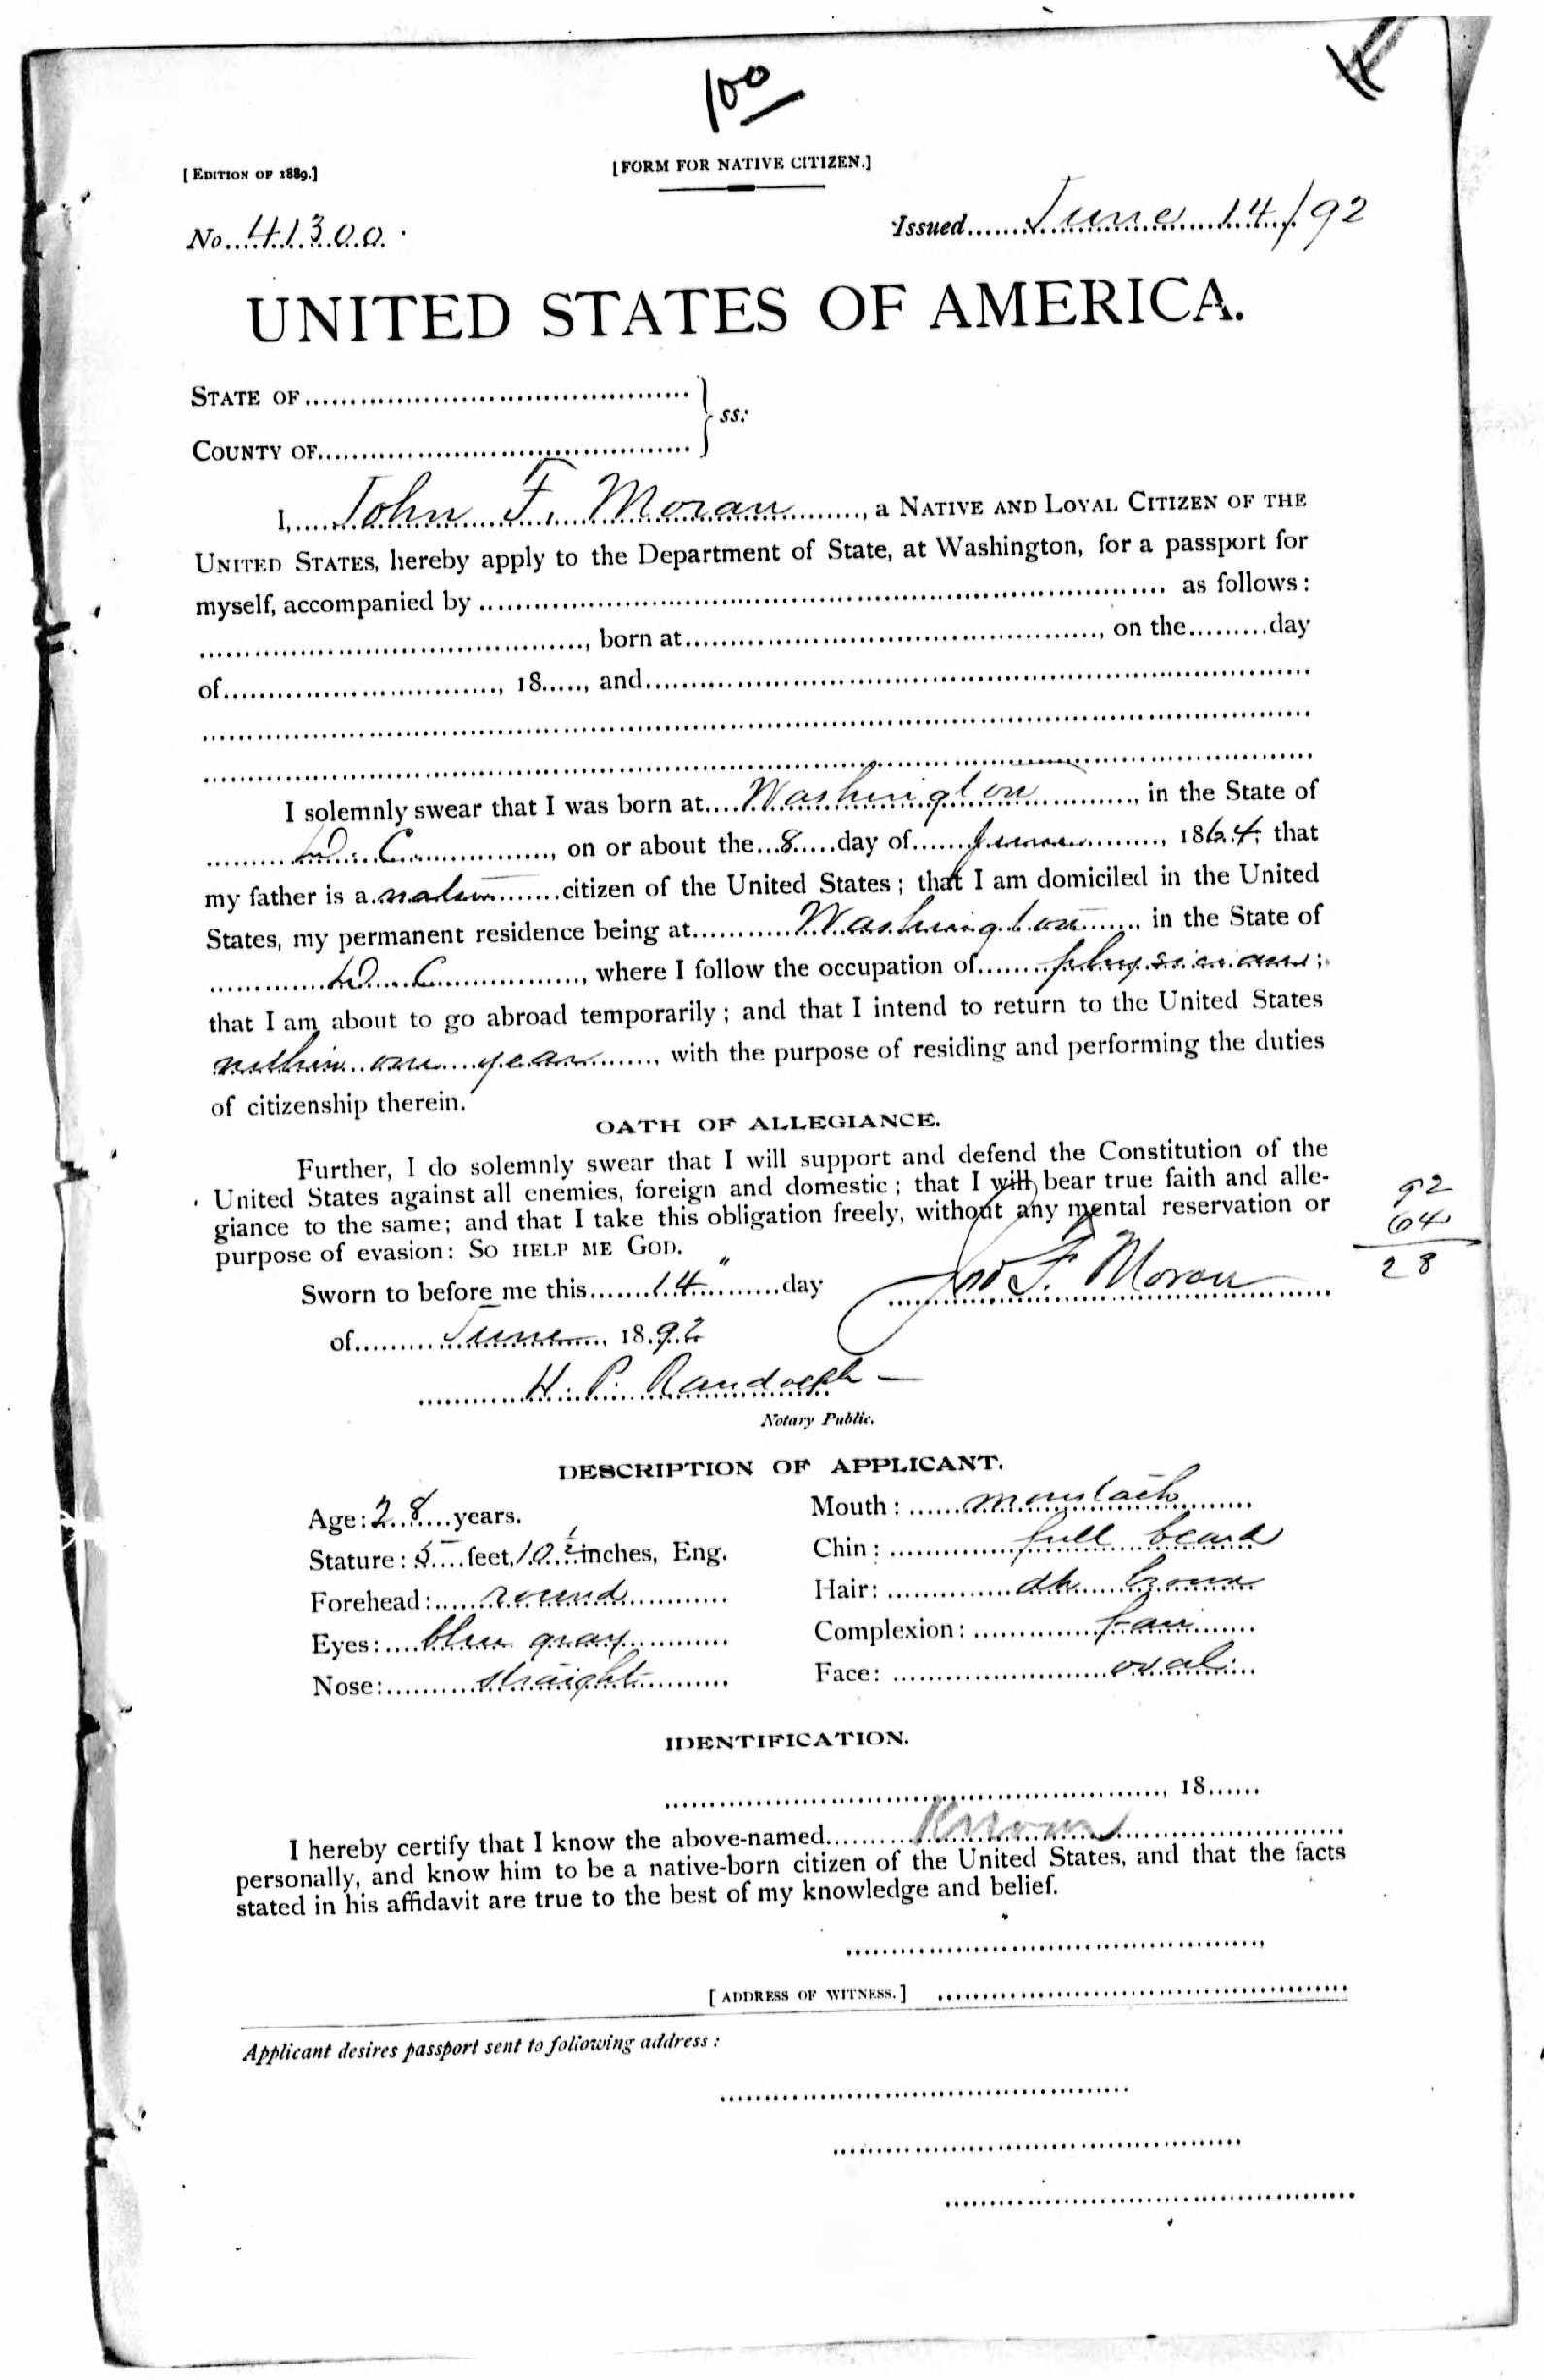 John F. Moran 1892 passport application